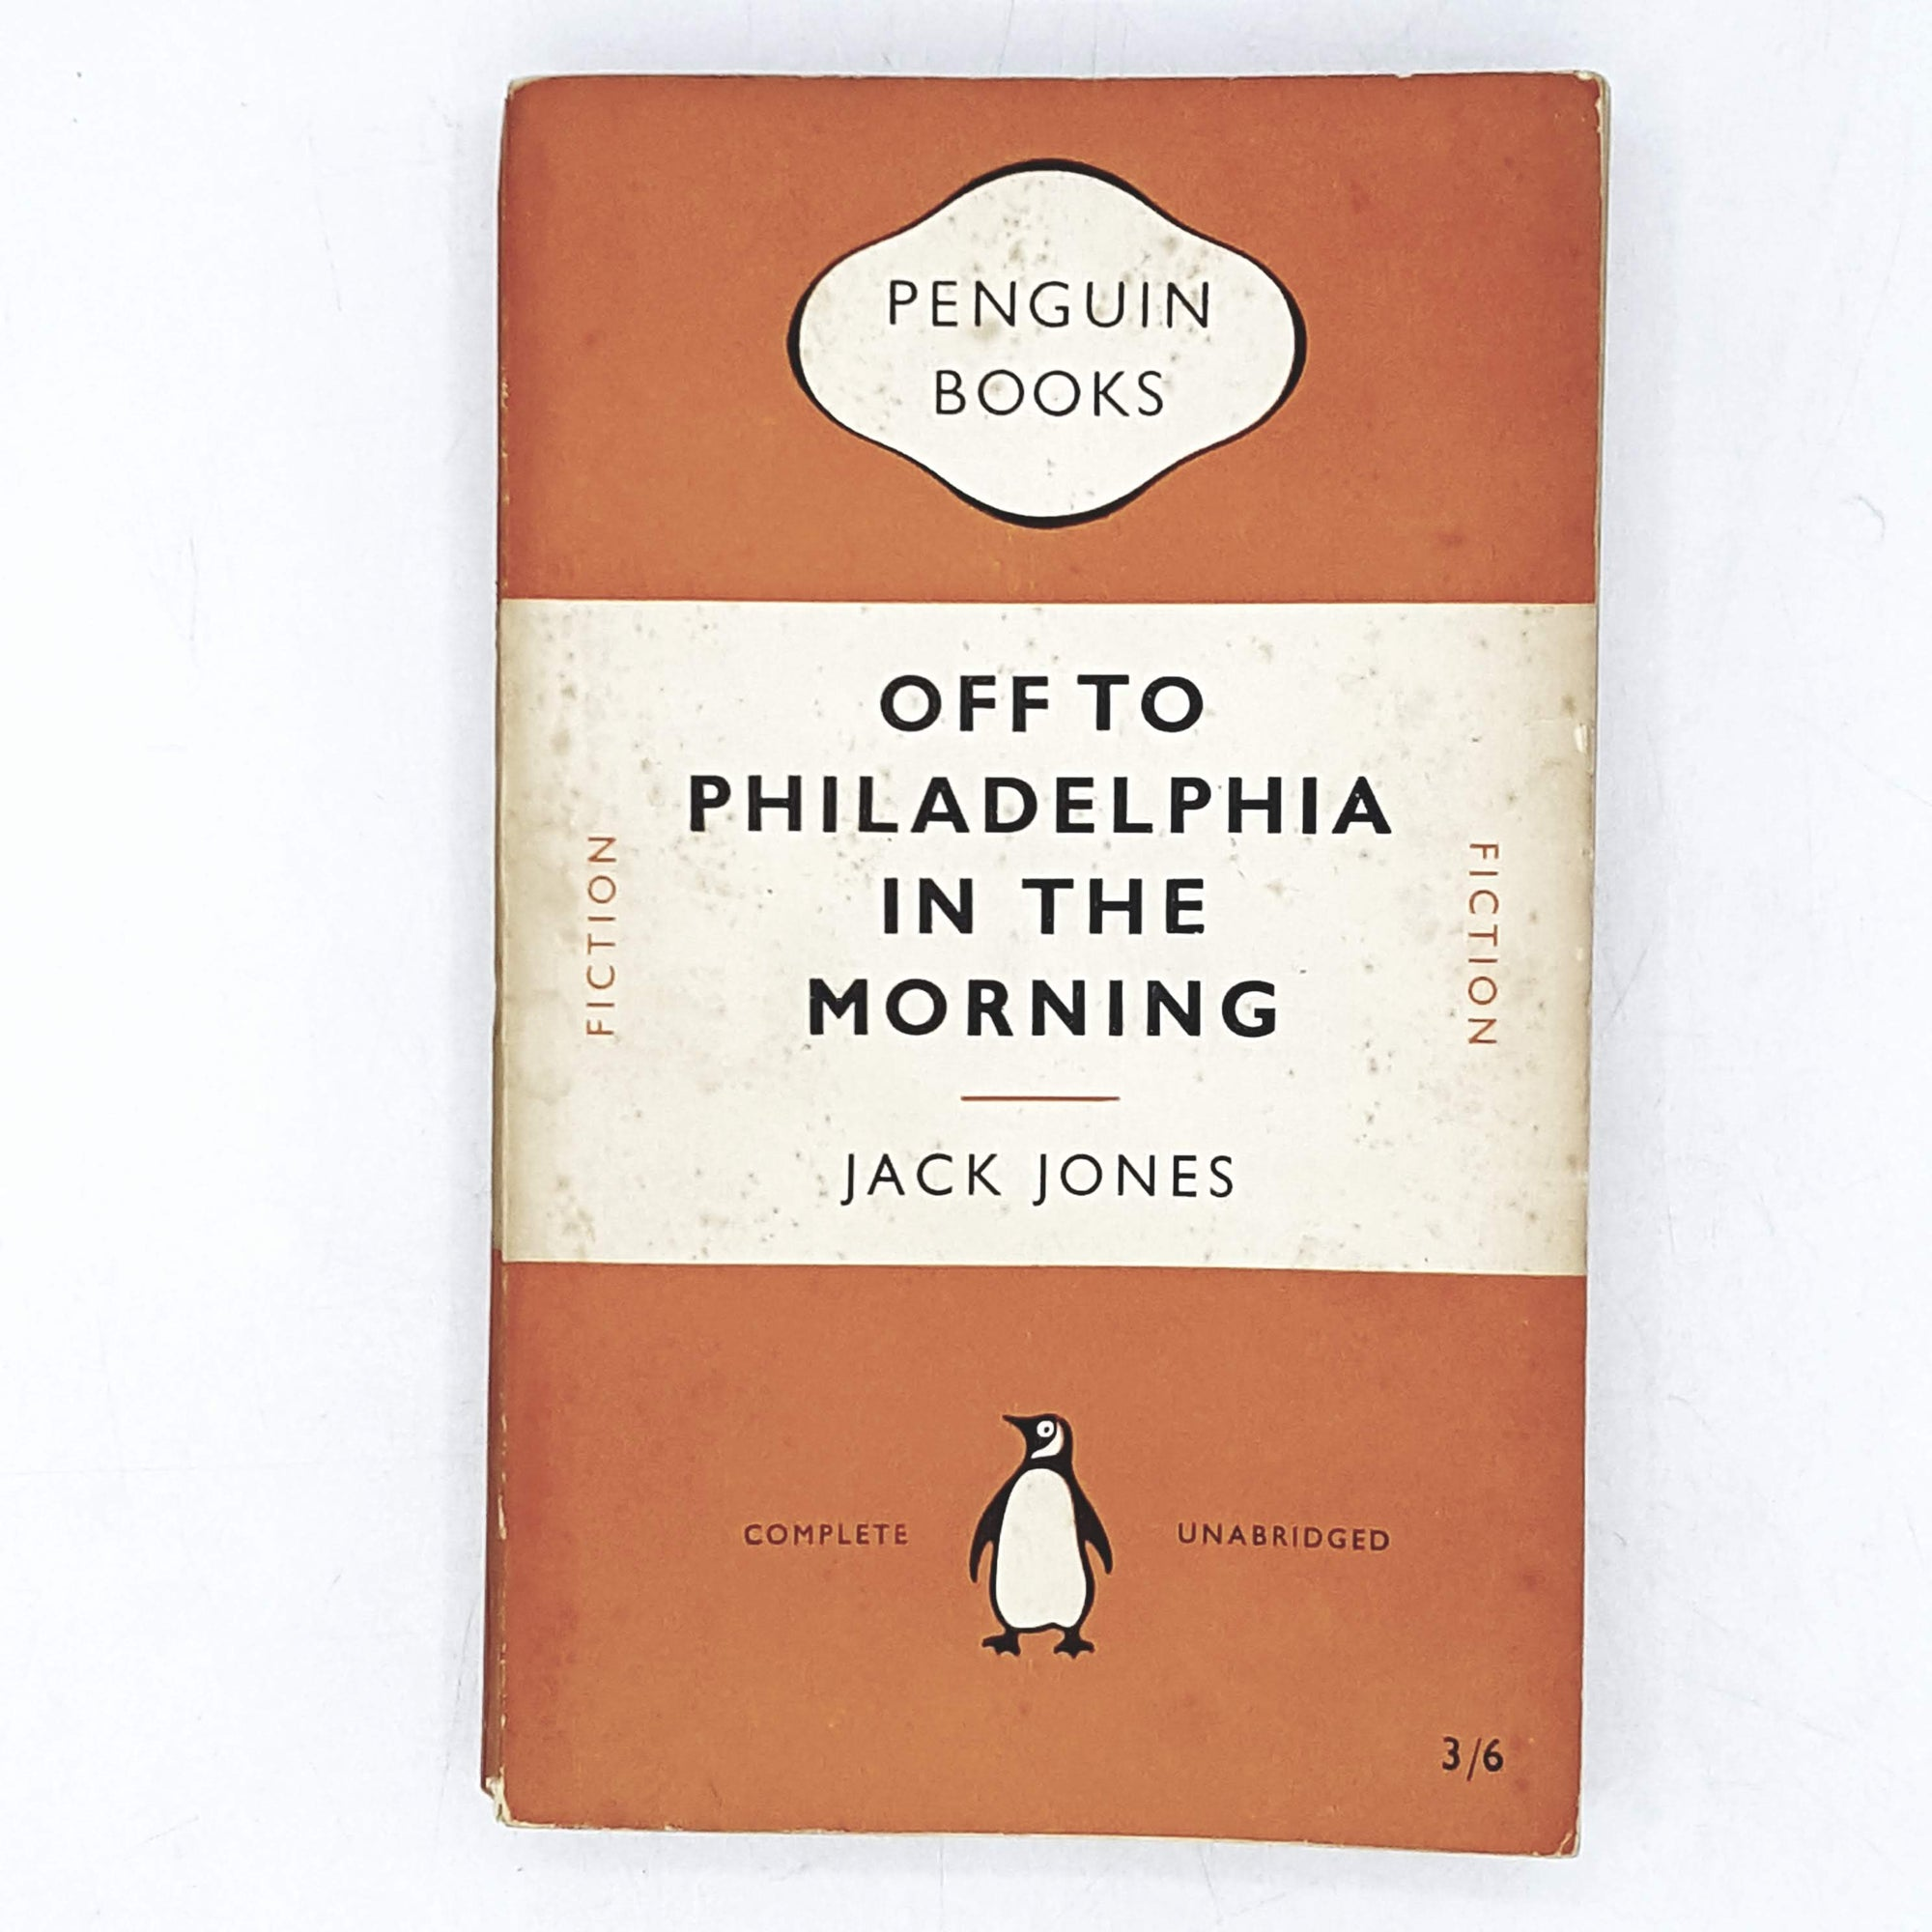 Vintage Penguin off to Philadelphia in the Morning by Jack Jones 1951